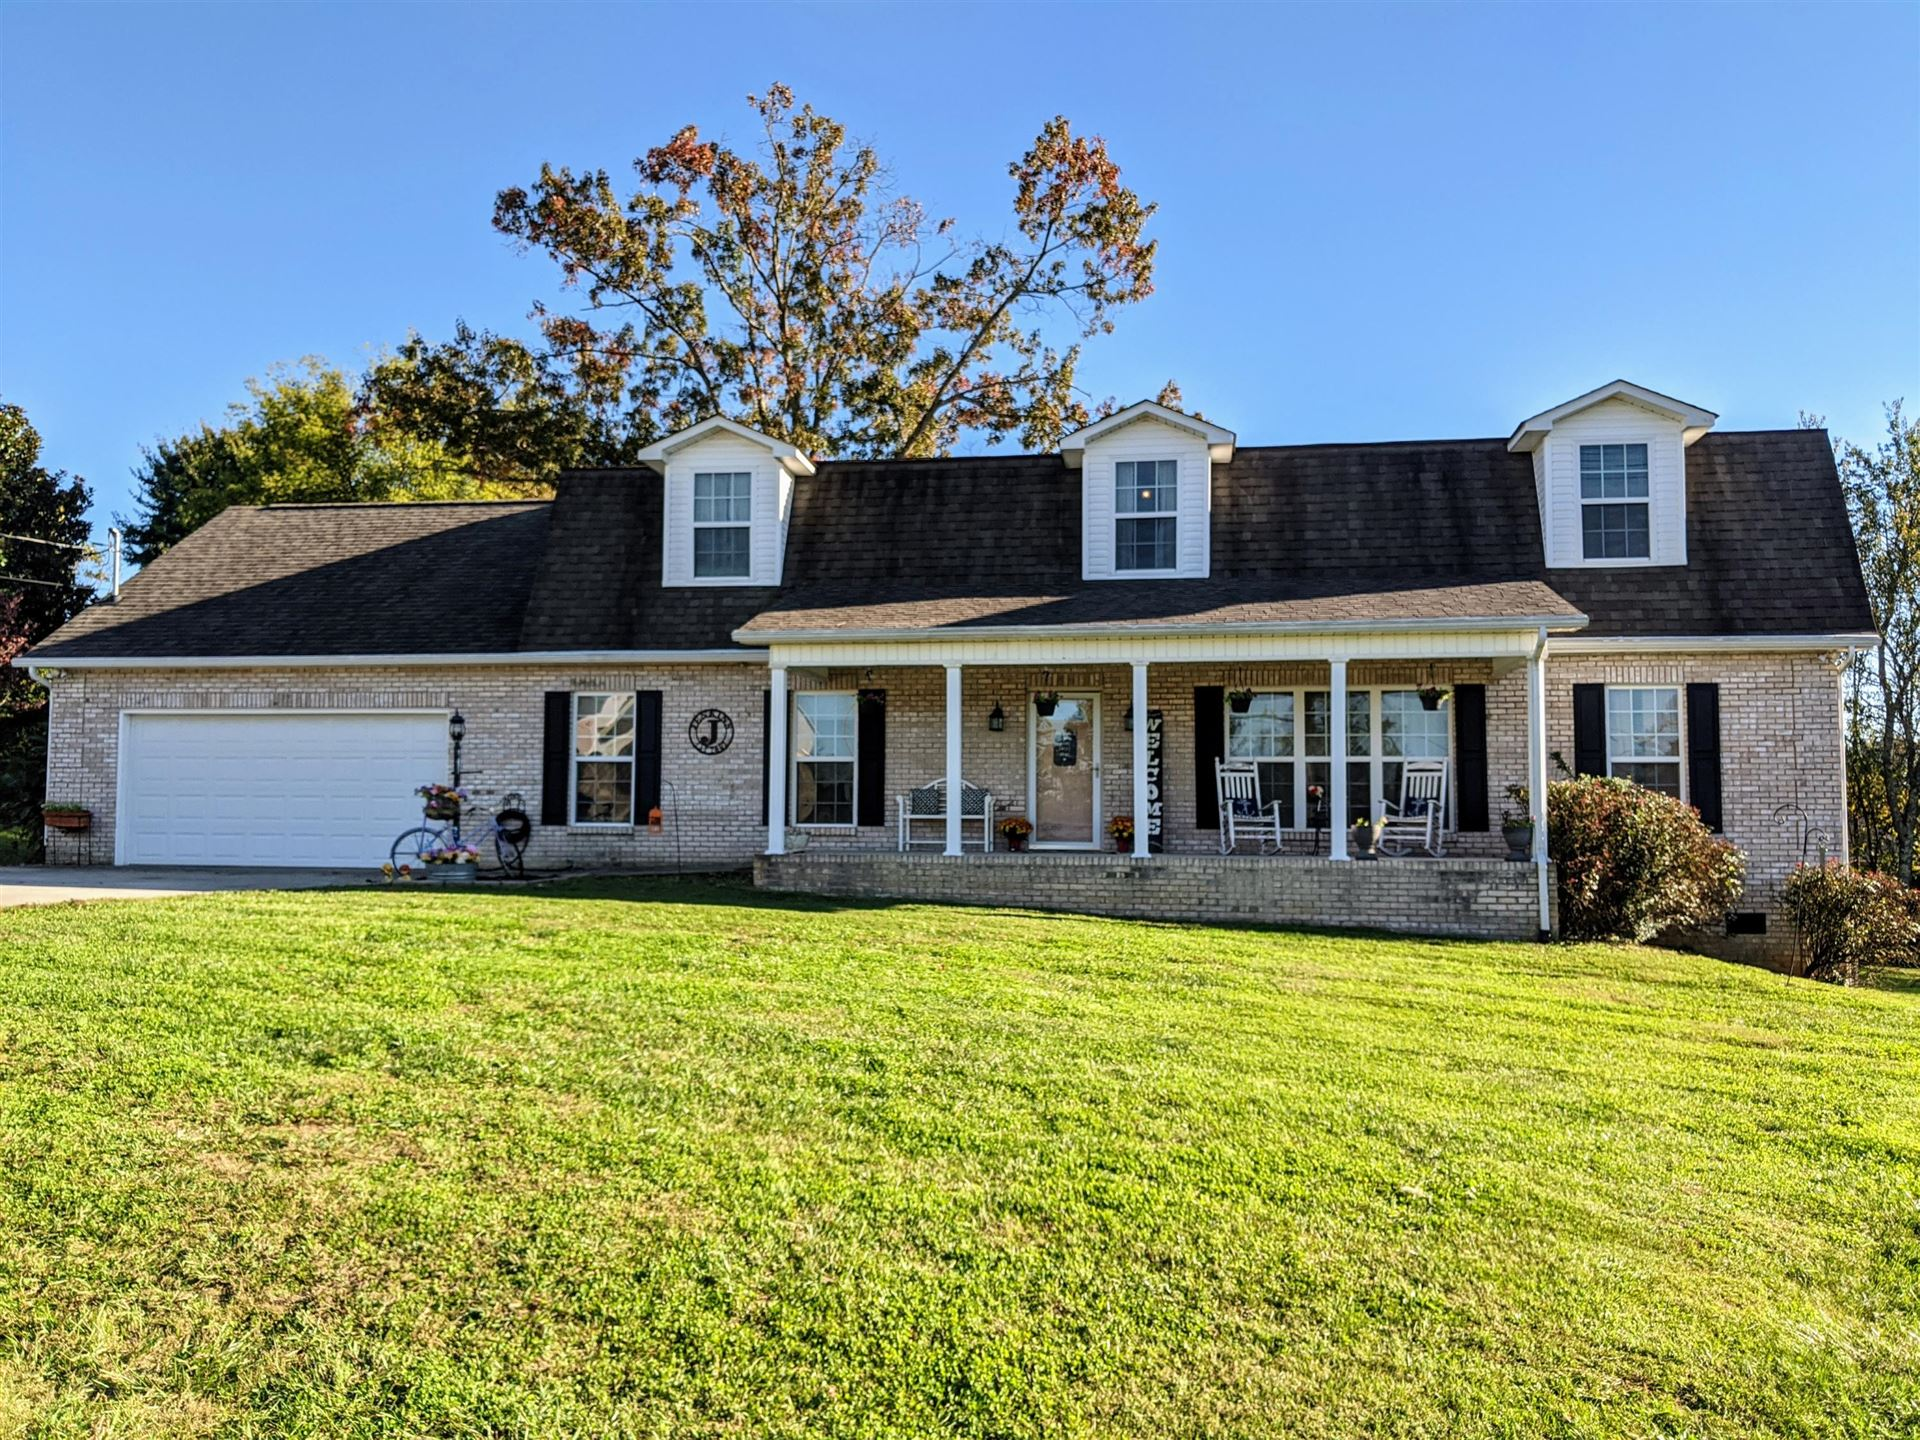 Photo of 2518 Sharp Drive, Lenoir City, TN 37771 (MLS # 1133184)